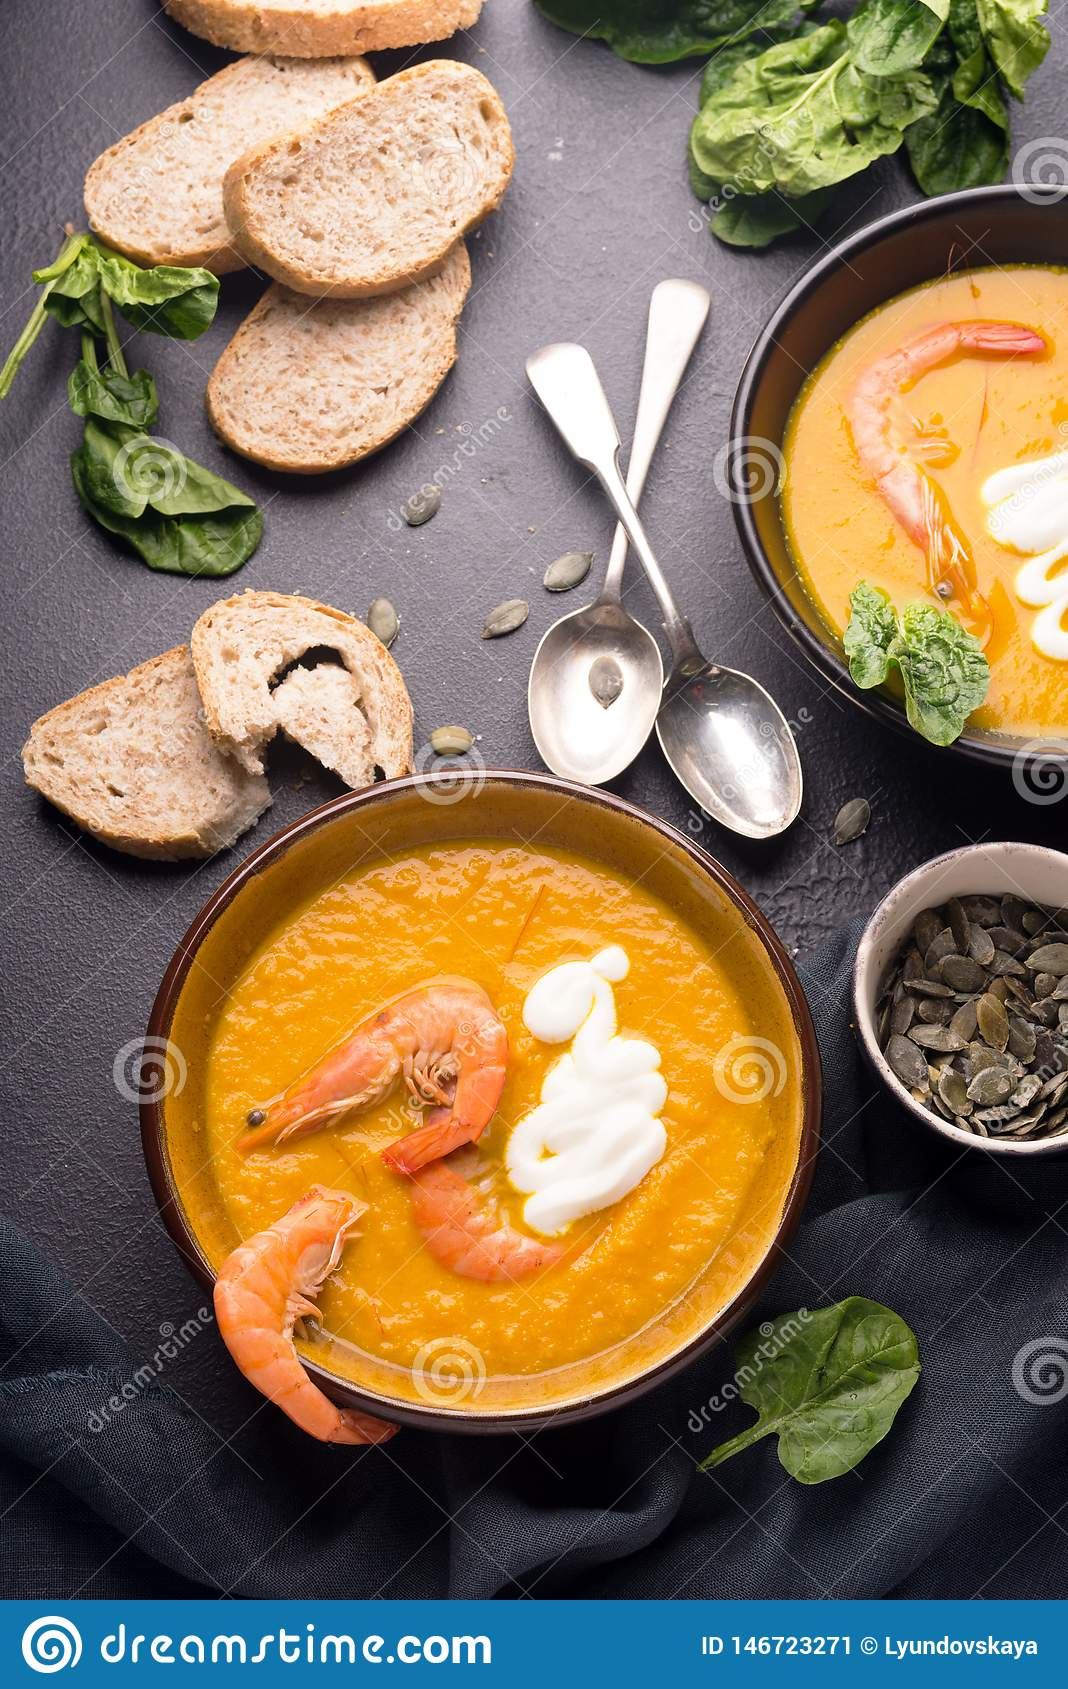 2 dishes of orange pumpkin soup on a black table. Three red shrimps decorate the soup.